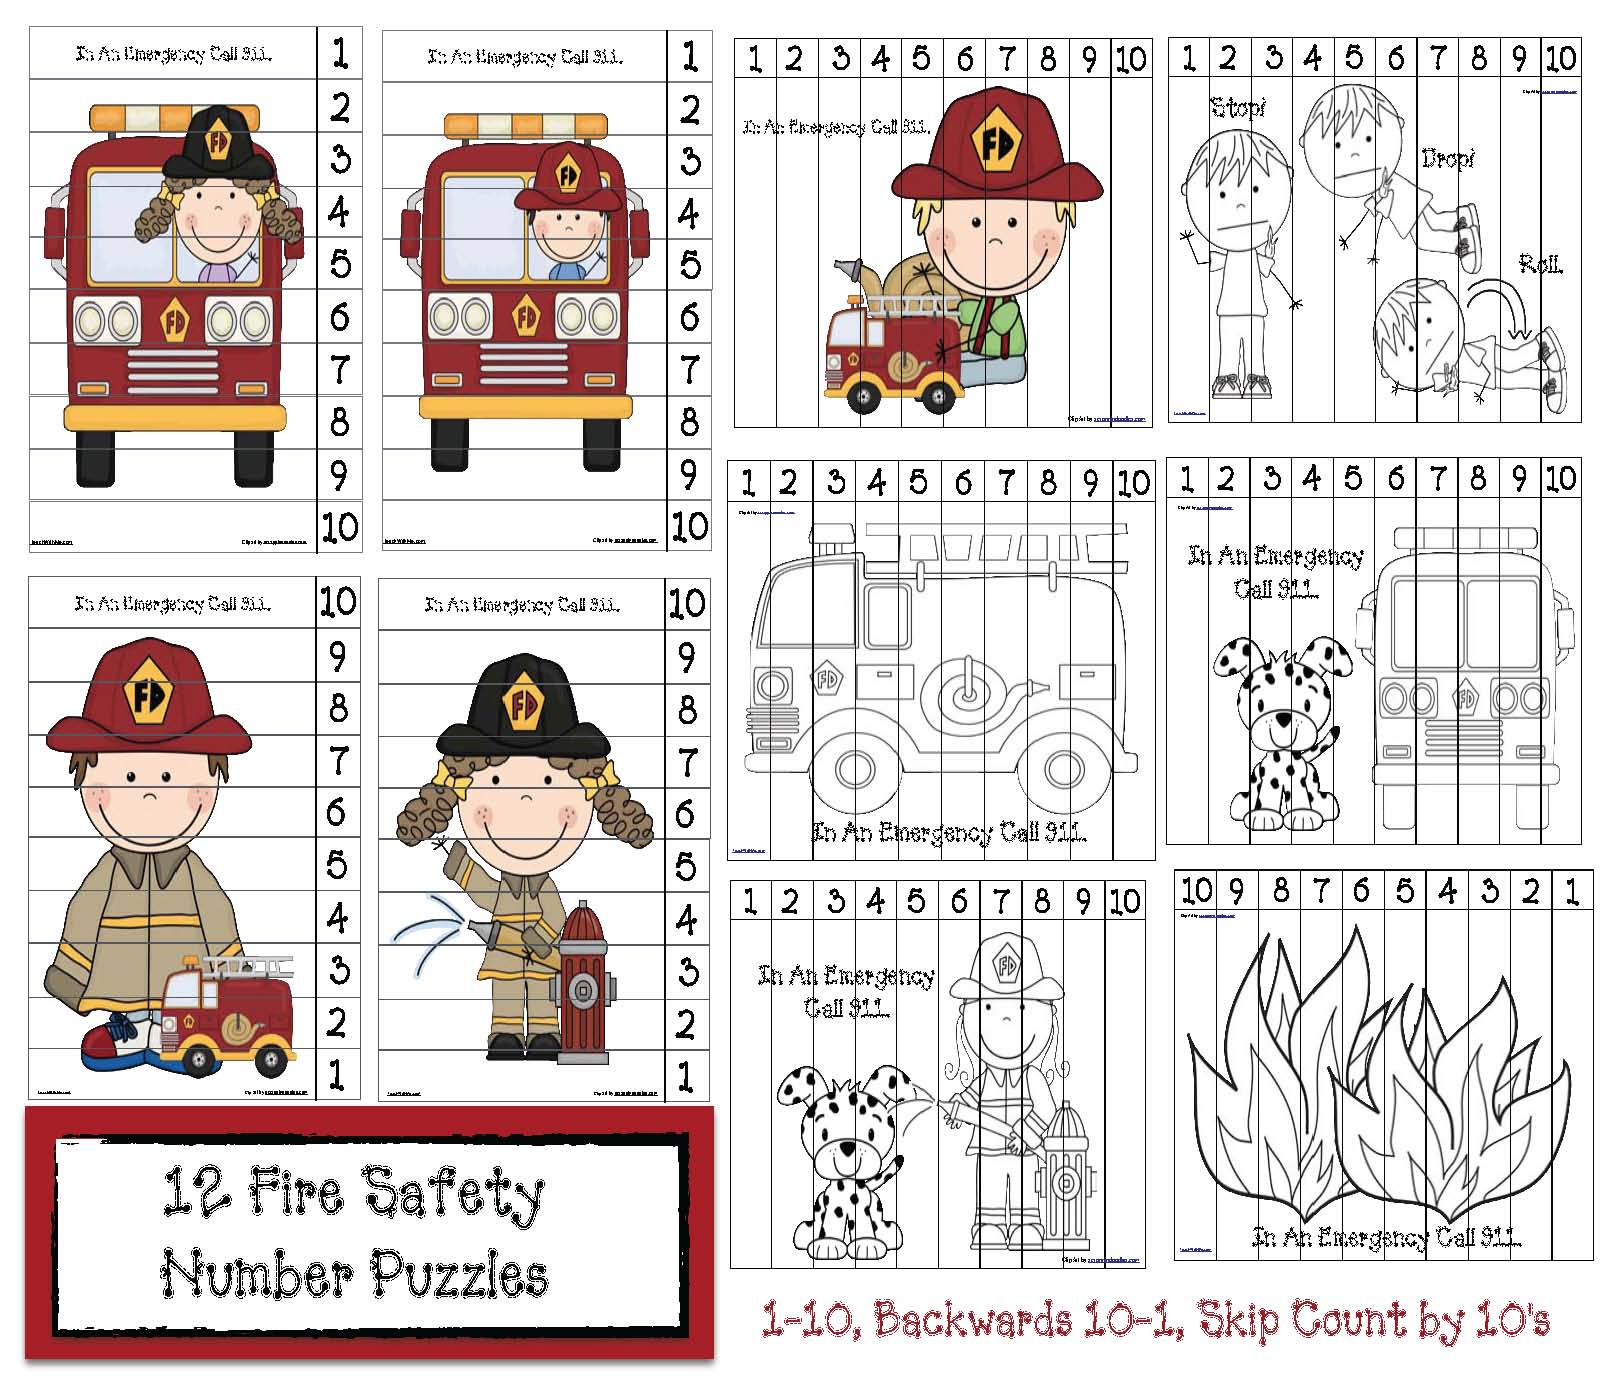 fire safety number puzzles cov 2